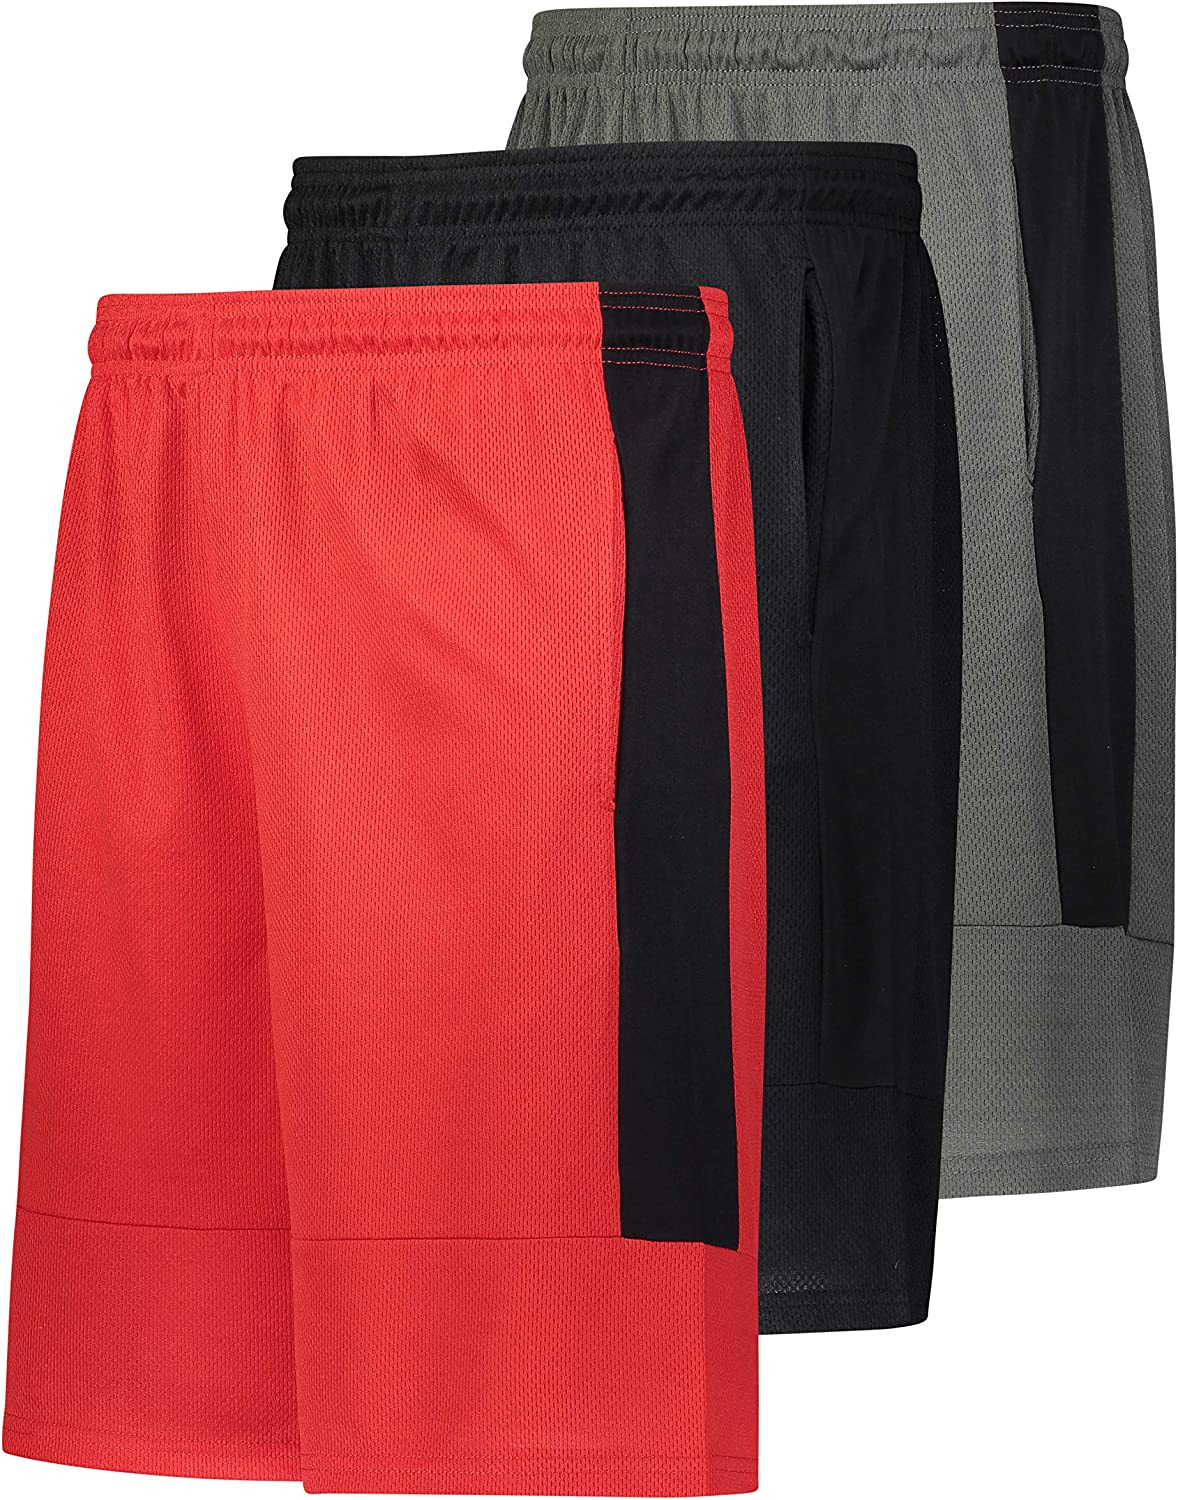 3 Pack X-PRO Mens Athletic Shorts Active Performance Workout Gym Shorts with Pockets